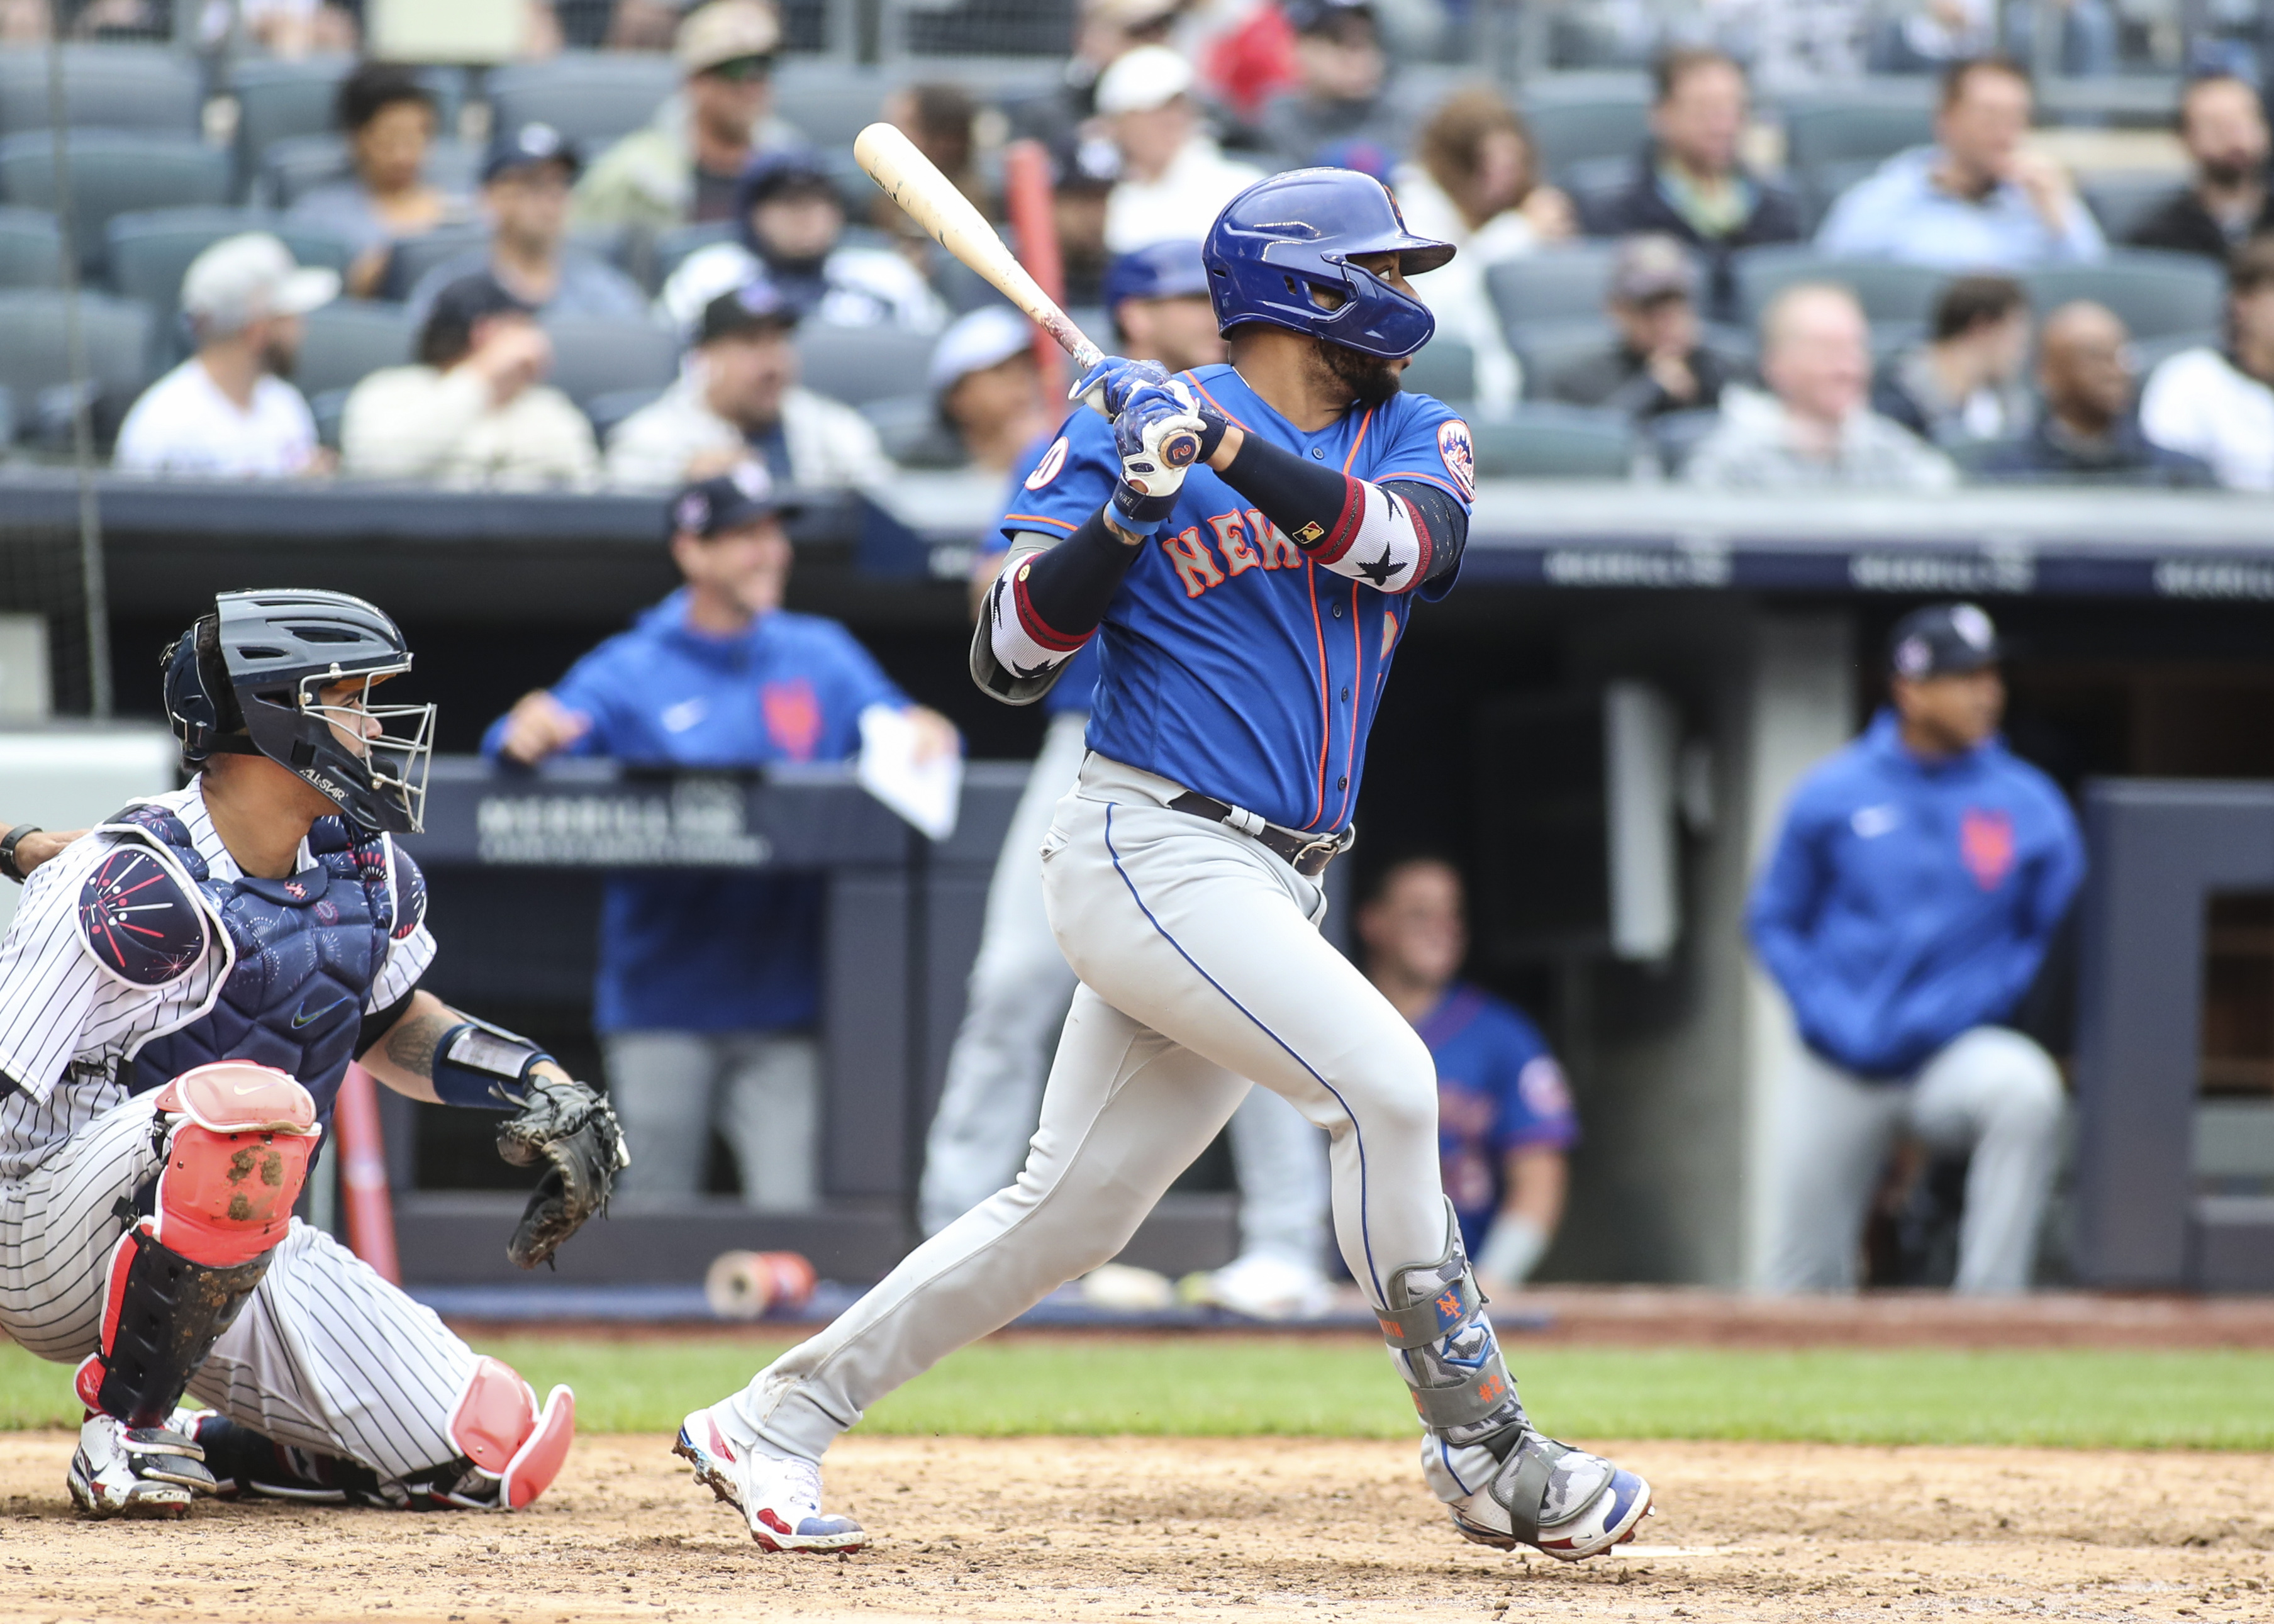 7/4/21 Game Preview: New York Mets at New York Yankees, Doubleheader Edition